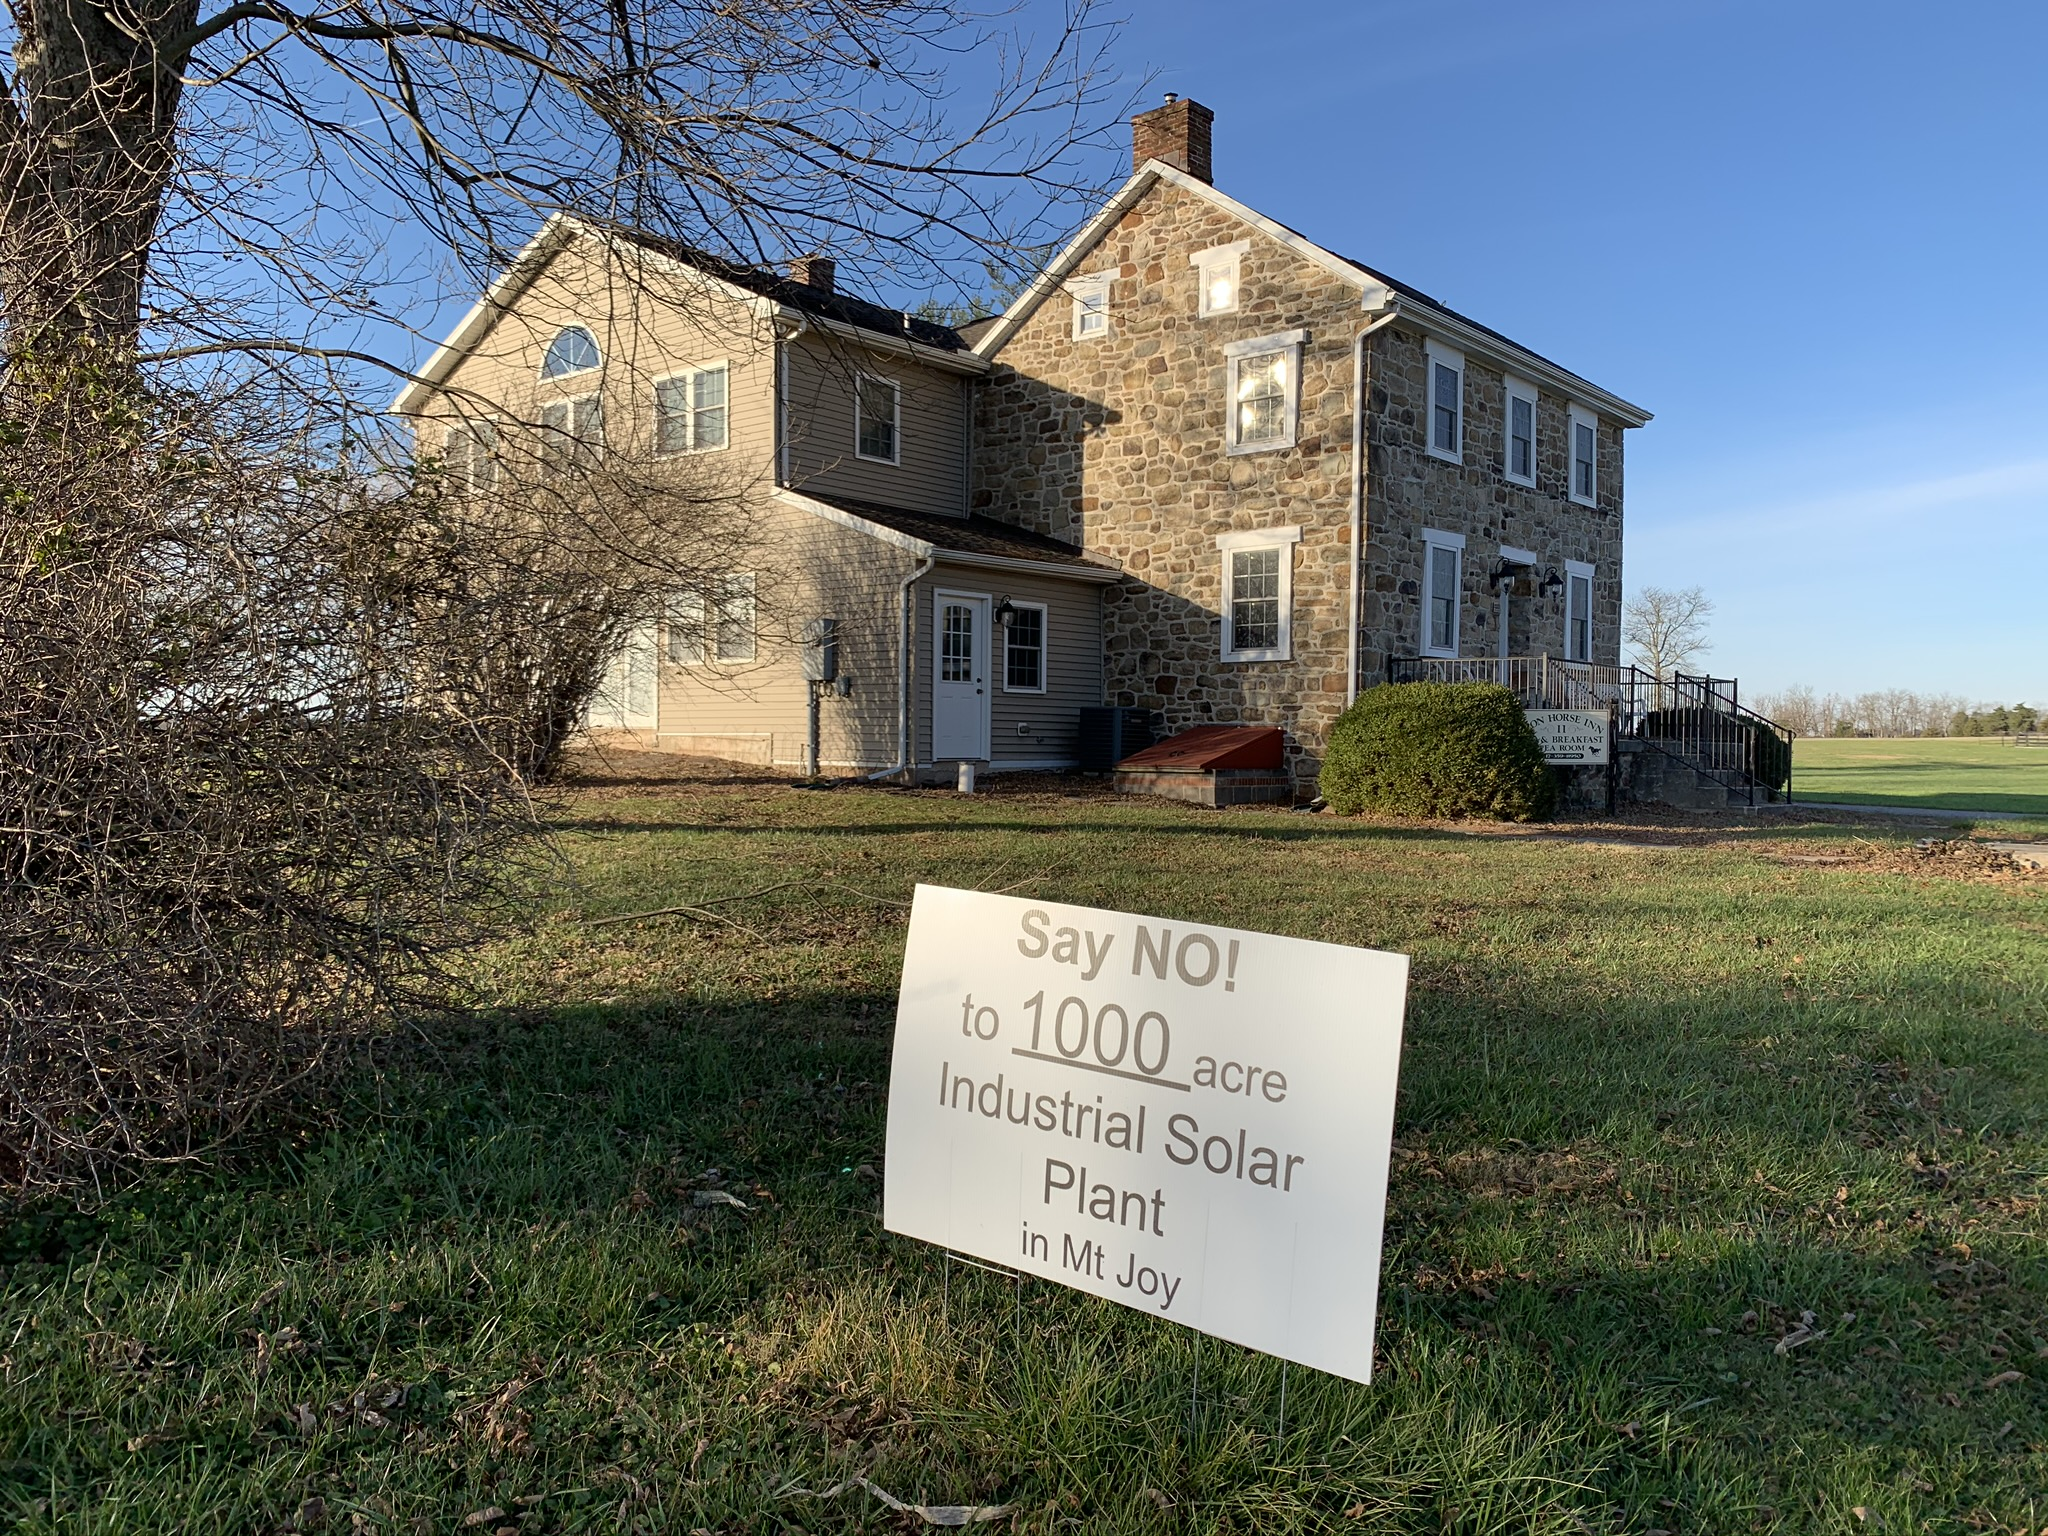 One of the many signs protesting a proposed solar project in Mount Joy Township, Adams County is seen here in front of the Iron Horse Inn on Nov. 24